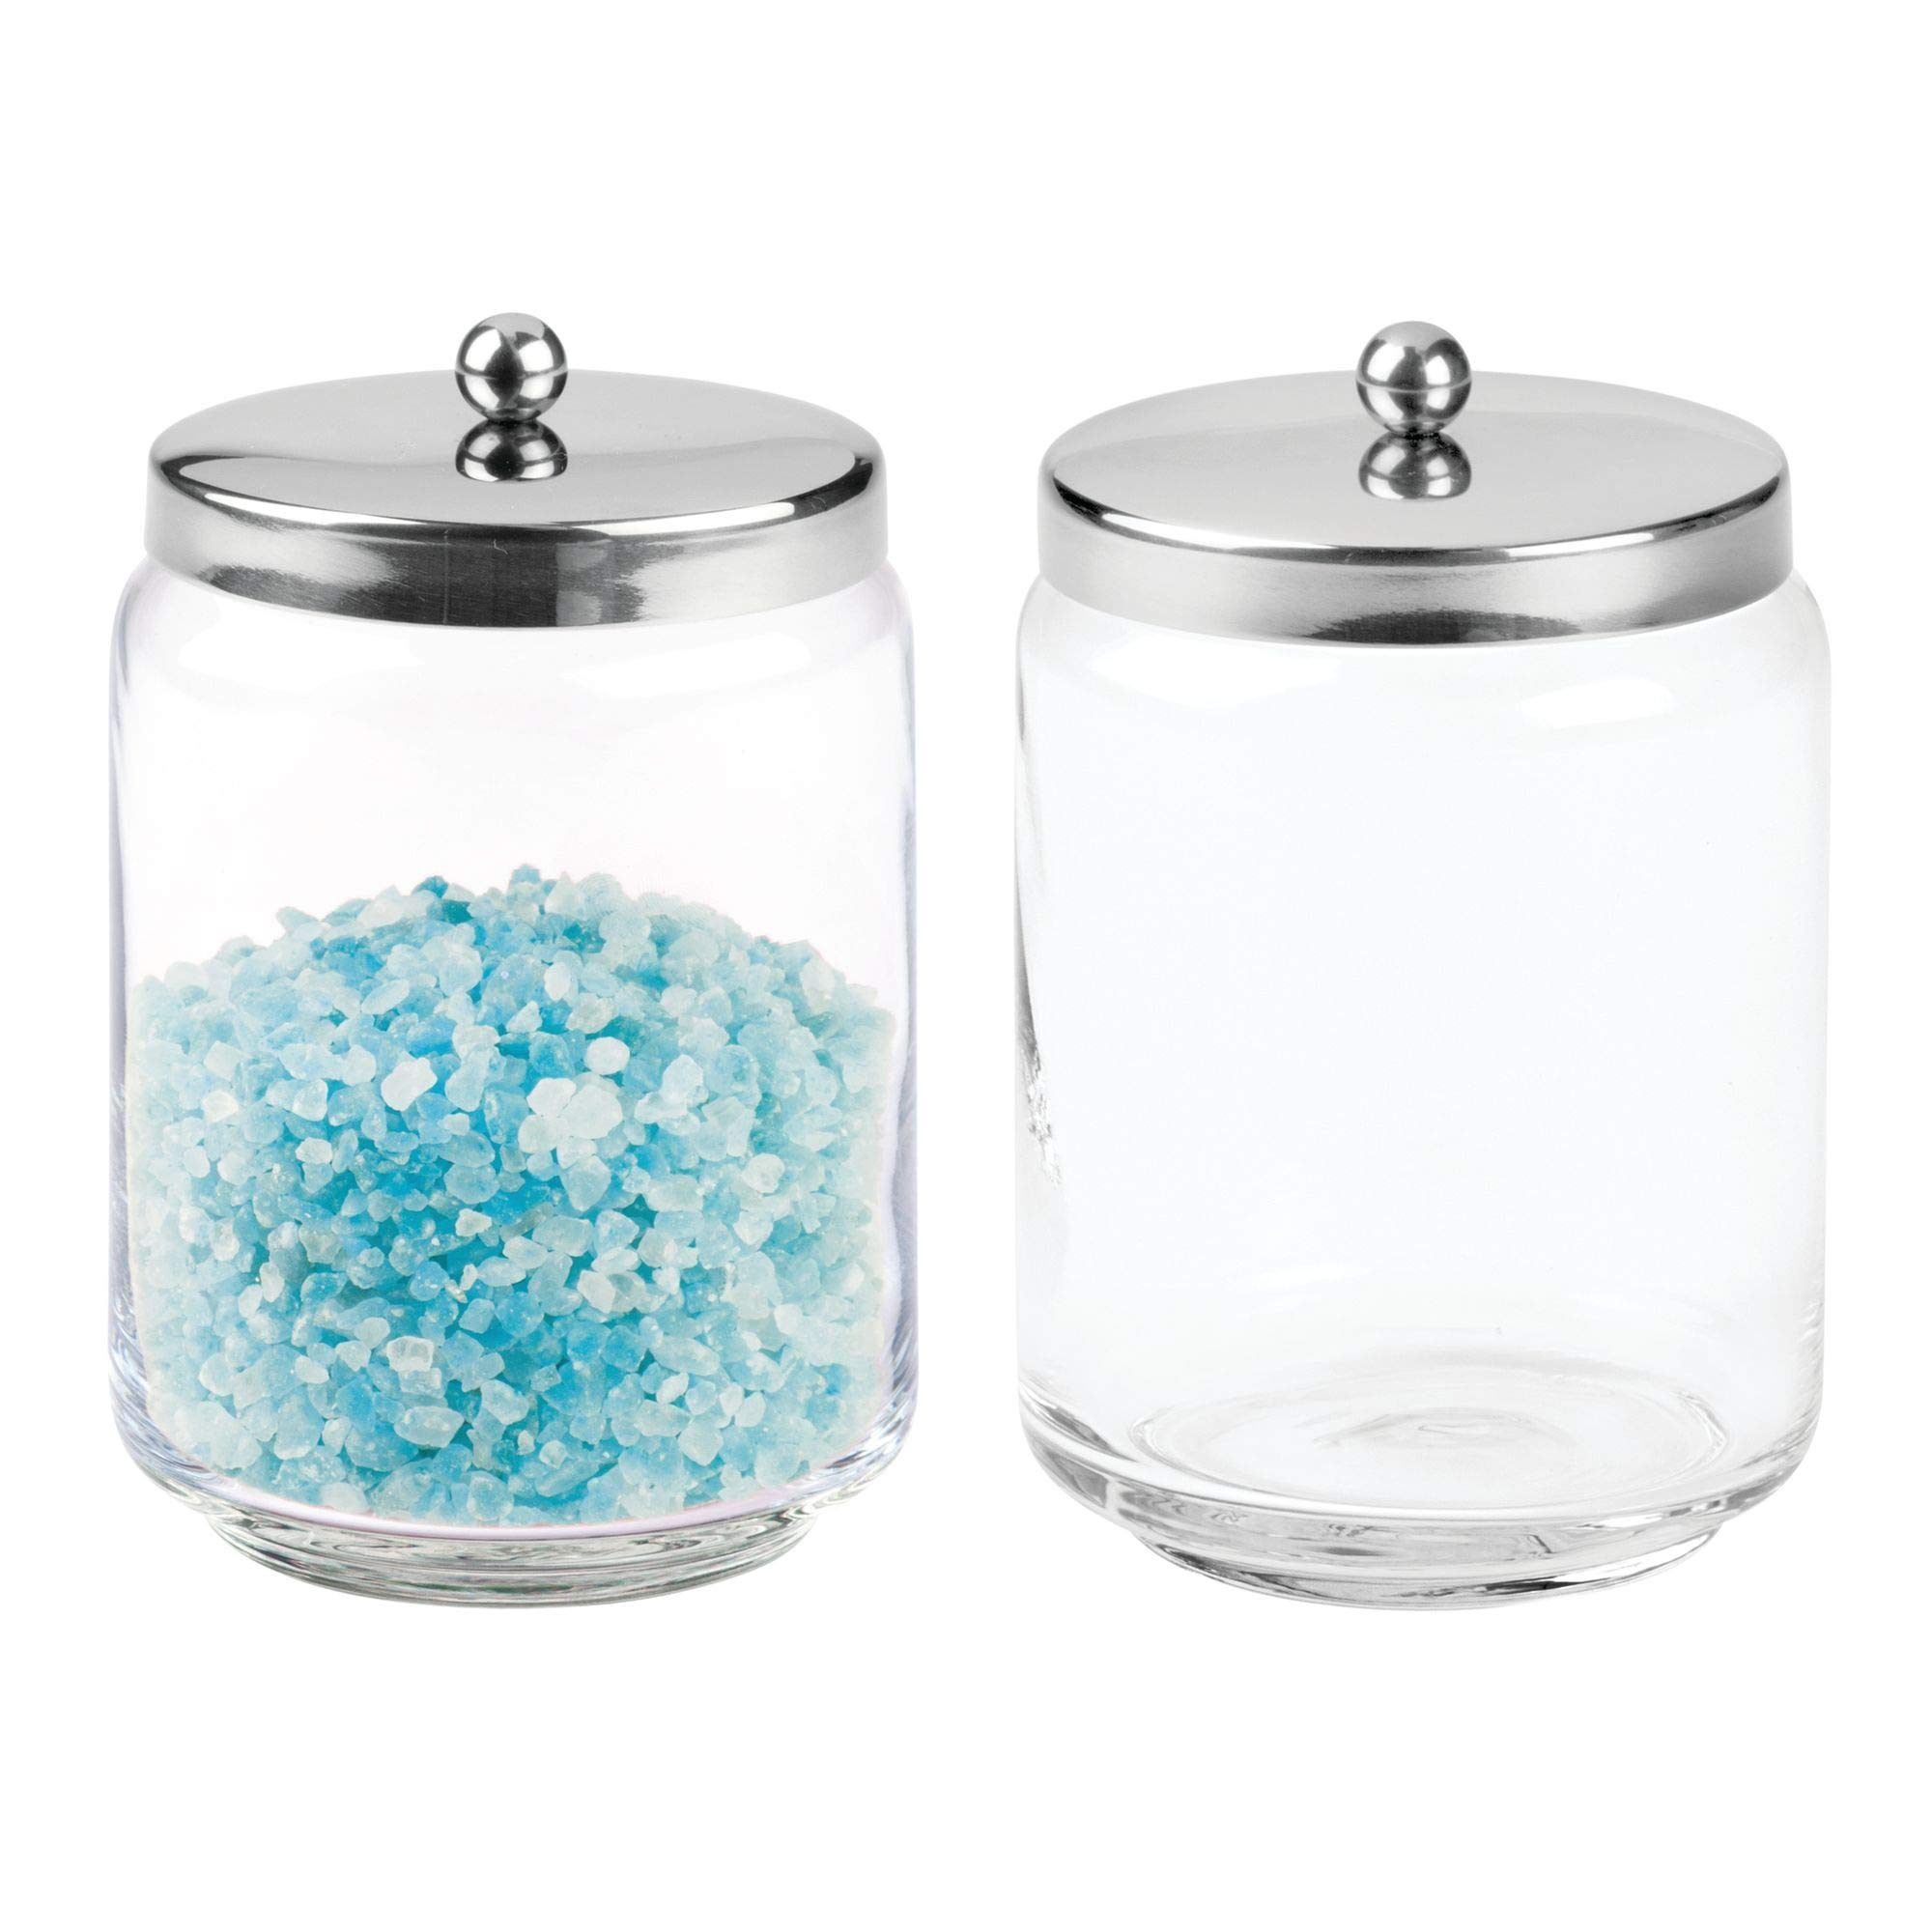 mDesign Bathroom Vanity Glass Storage Organizer Canister Jars for Q Tips, Cotton Swabs, Cotton Rounds, Cotton Balls, Makeup Sponges, Bath Salts - Pack of 2, Tall, Clear/Polished Stainless Steel